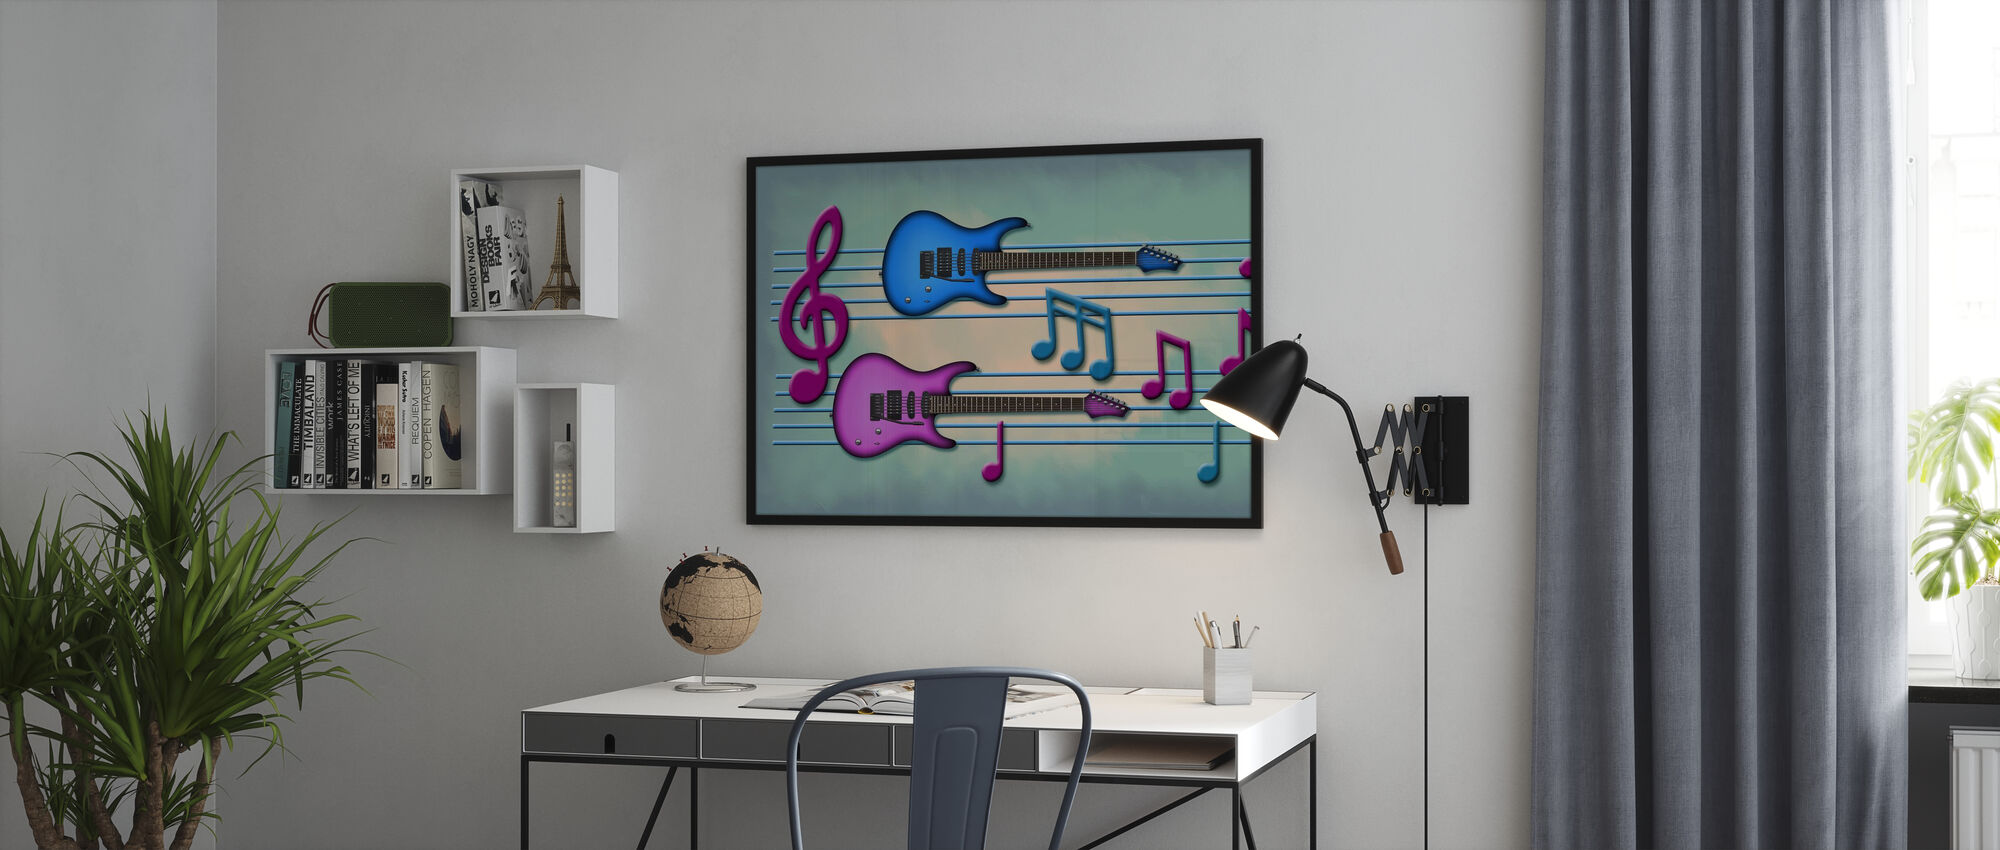 Colors of Music - Poster - Office